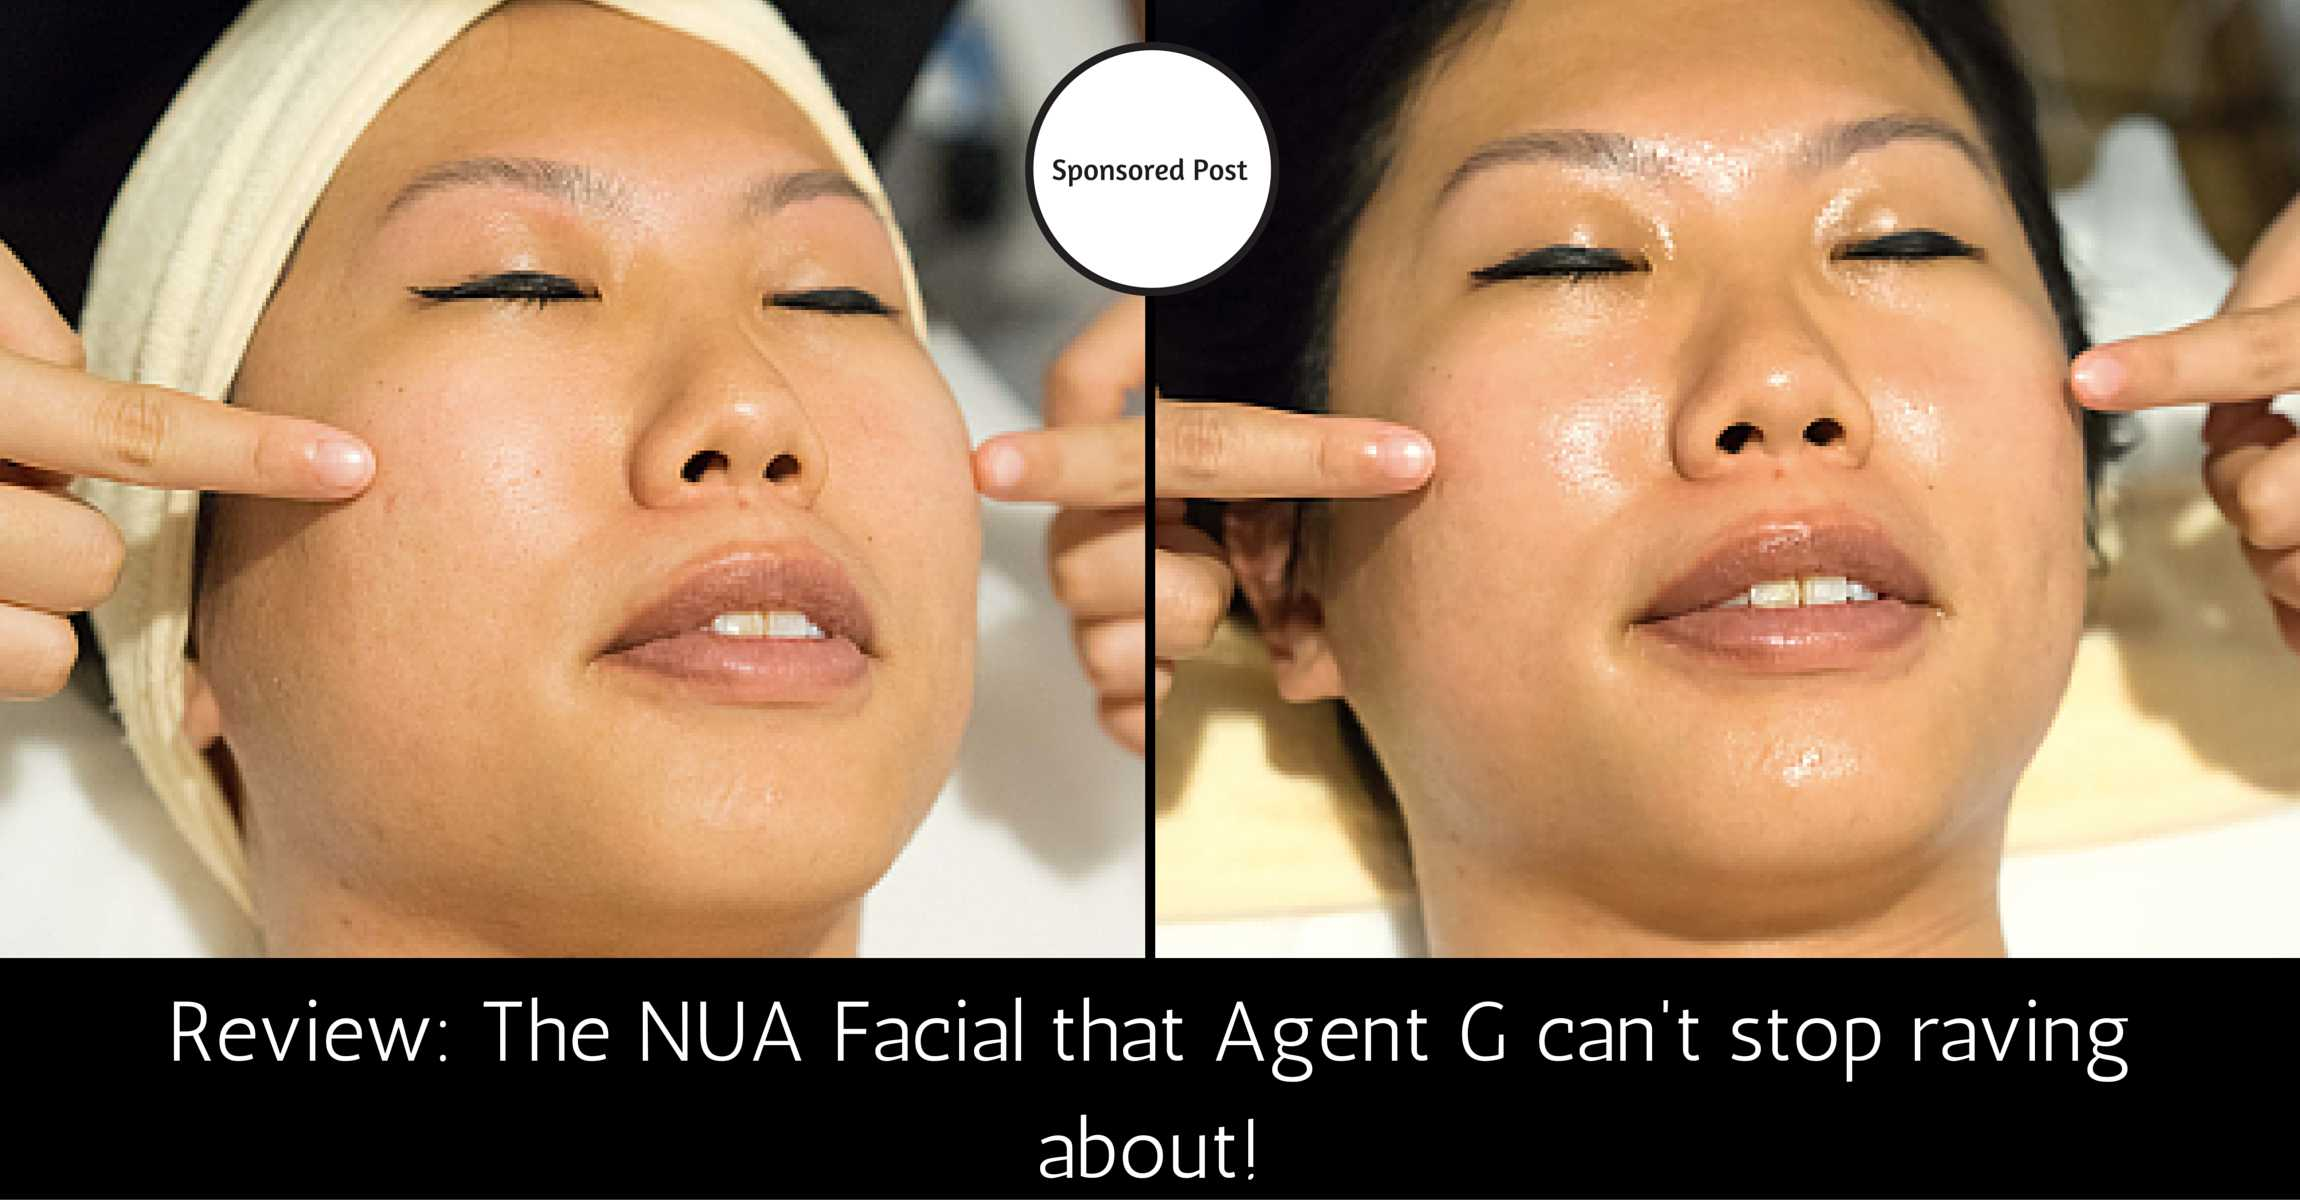 The SONA Facial that Agent G can't stop raving about!